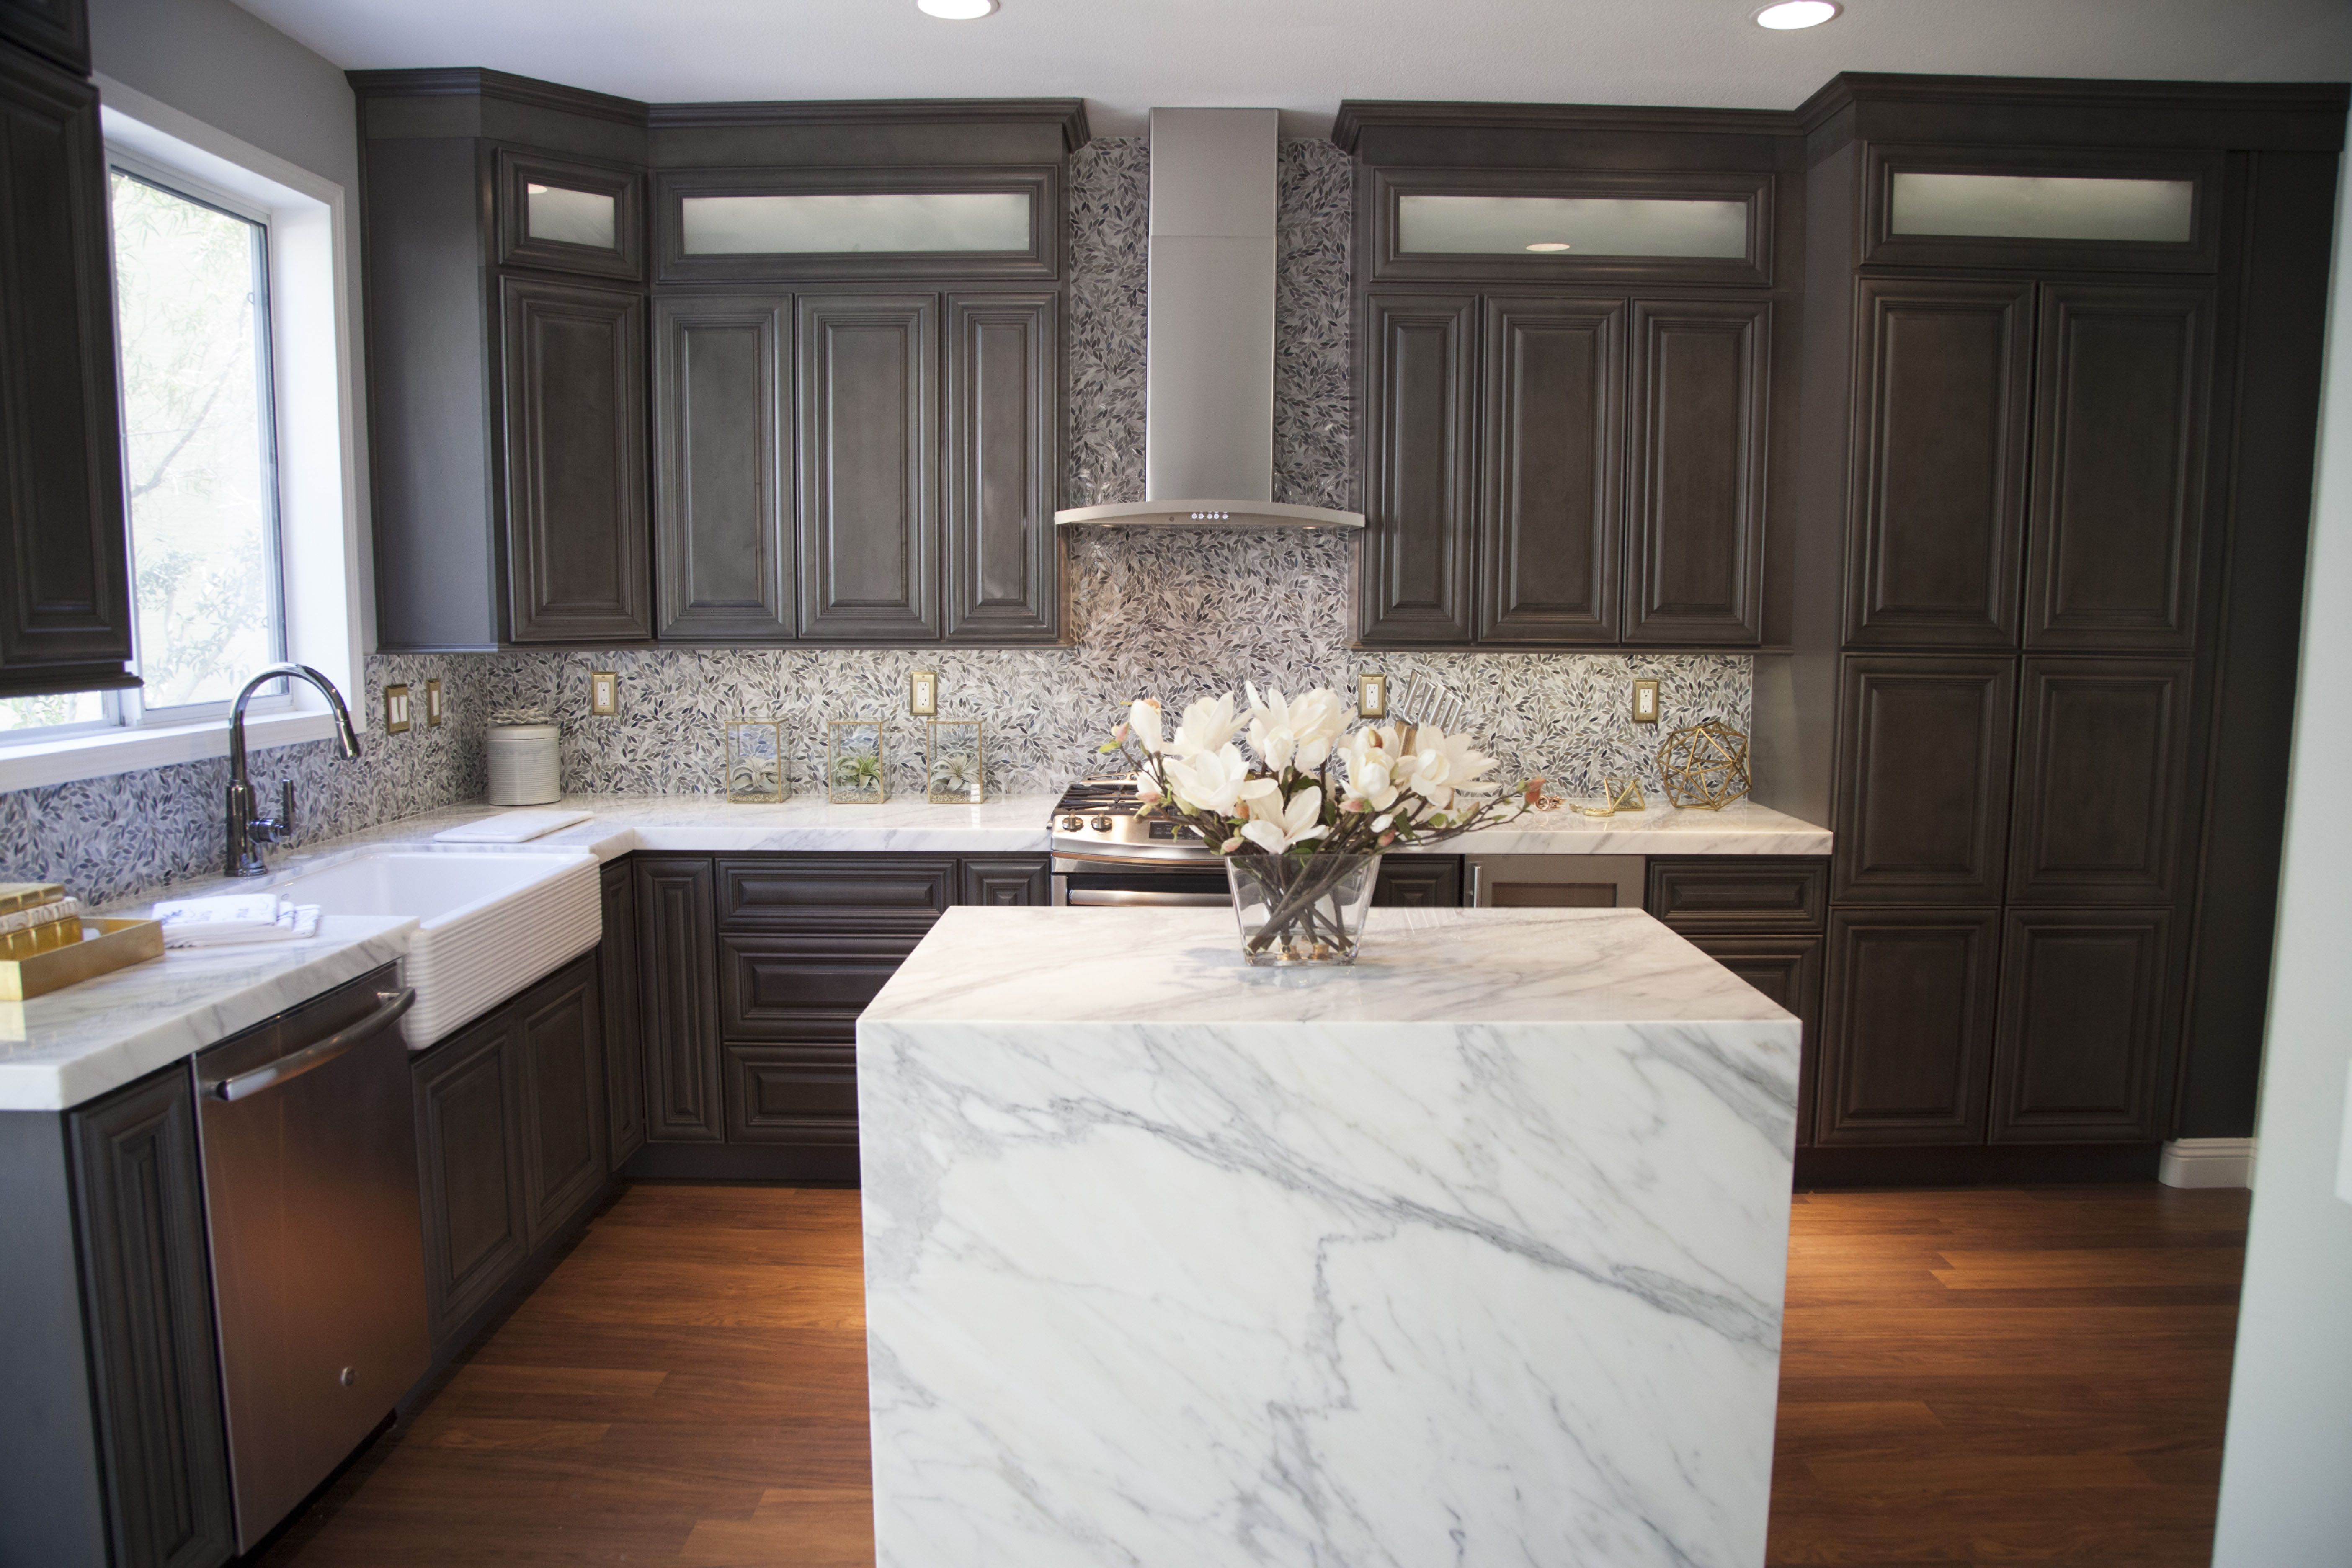 Kitchen To Go Cabinets Child's Play Alison Victoria Diy Network S Crashers Star Chose Use In Her Own Home Want The Same Look Visit Cabinetstogo Com Or